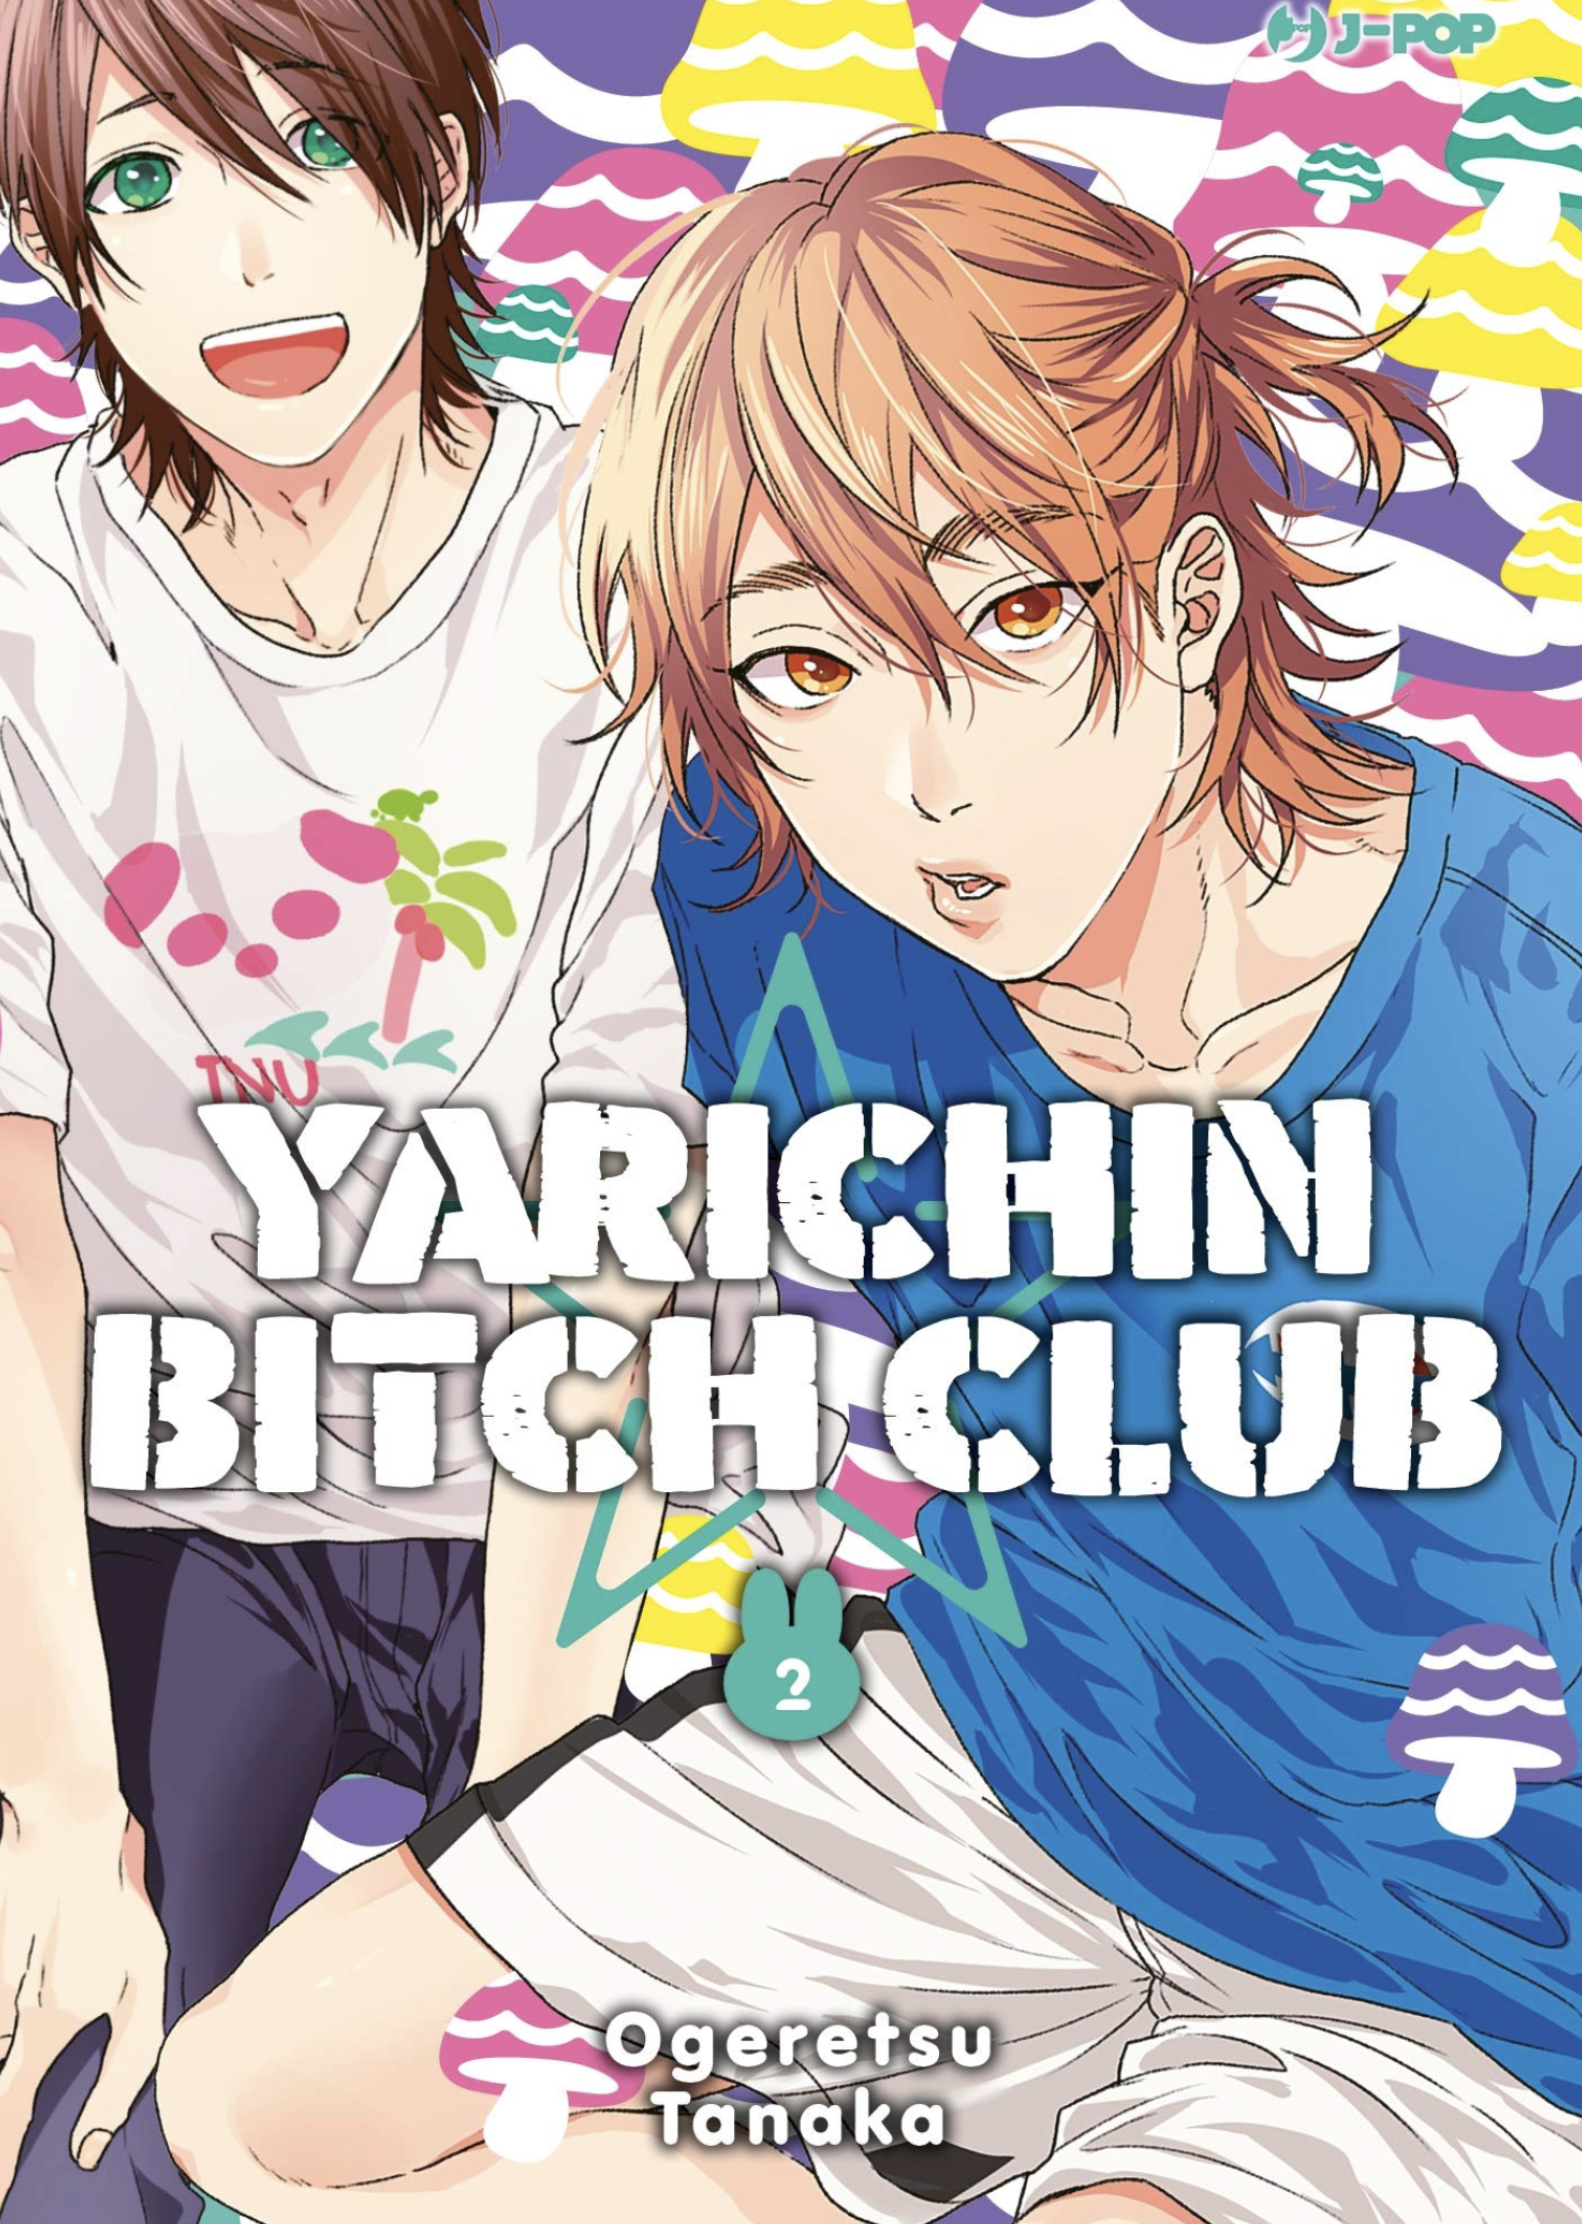 YARICHIN BITCH CLUB - sequenza completa (1-3)